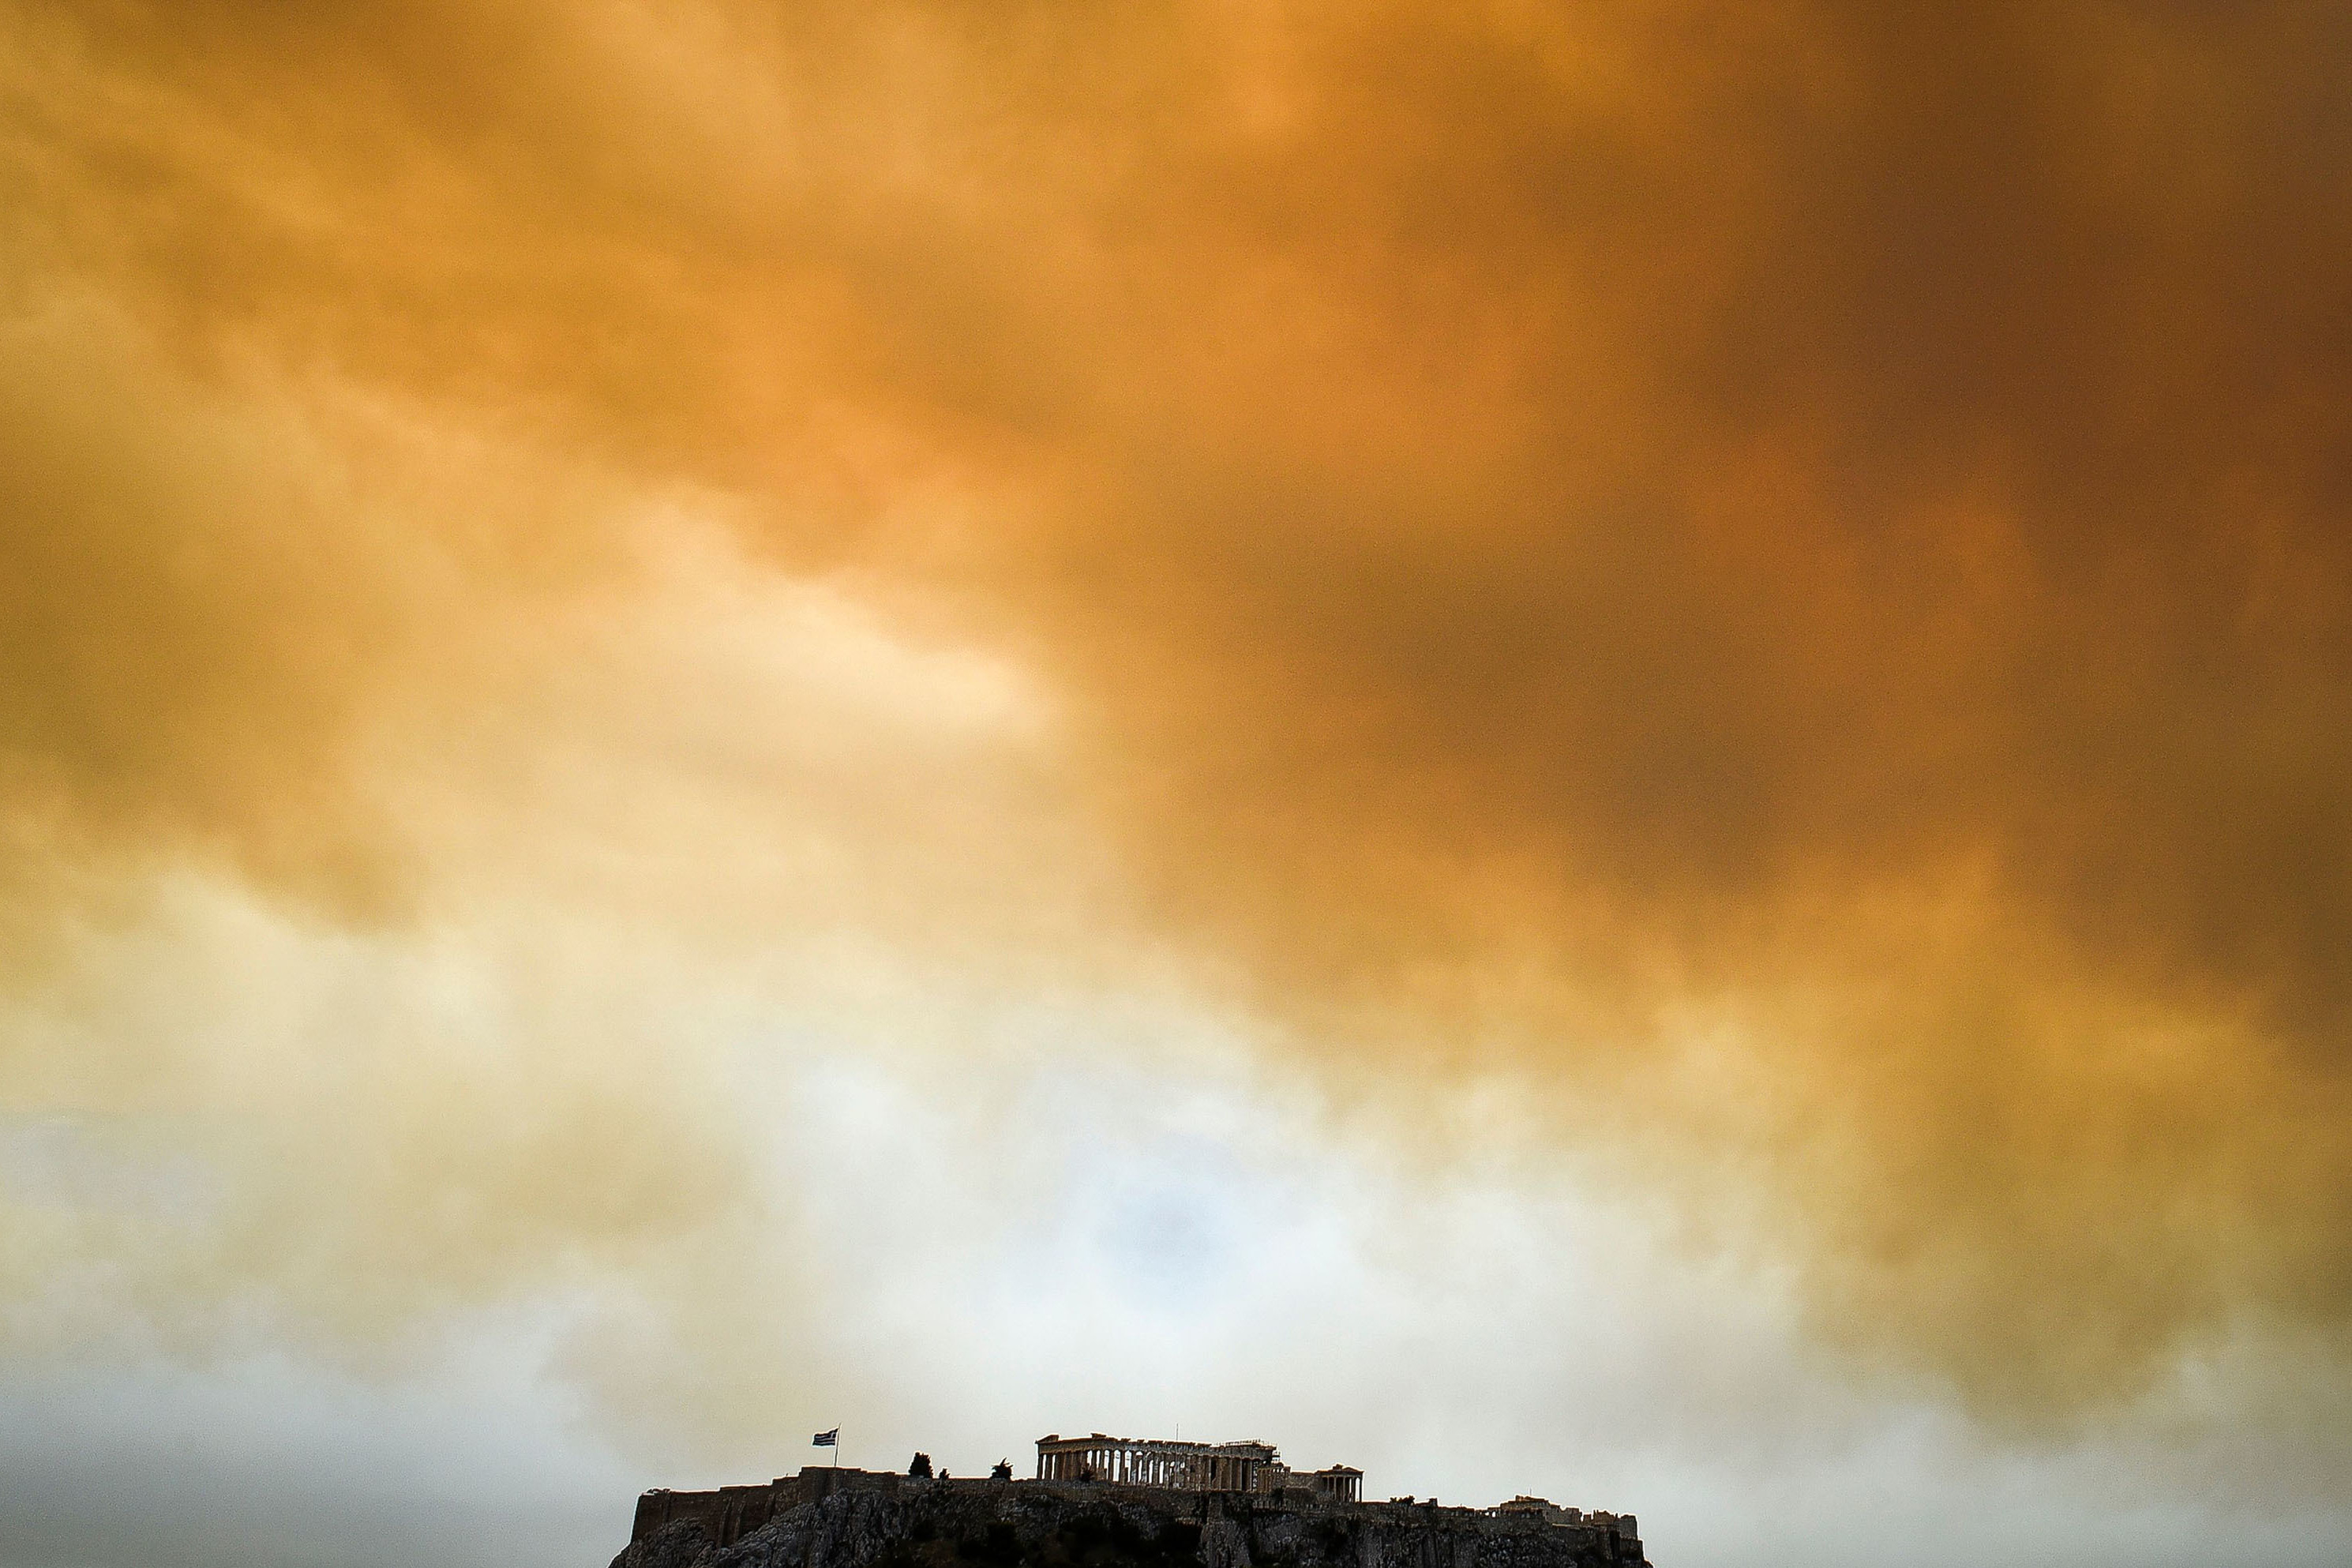 12greecefire-gettyimages-1004298878